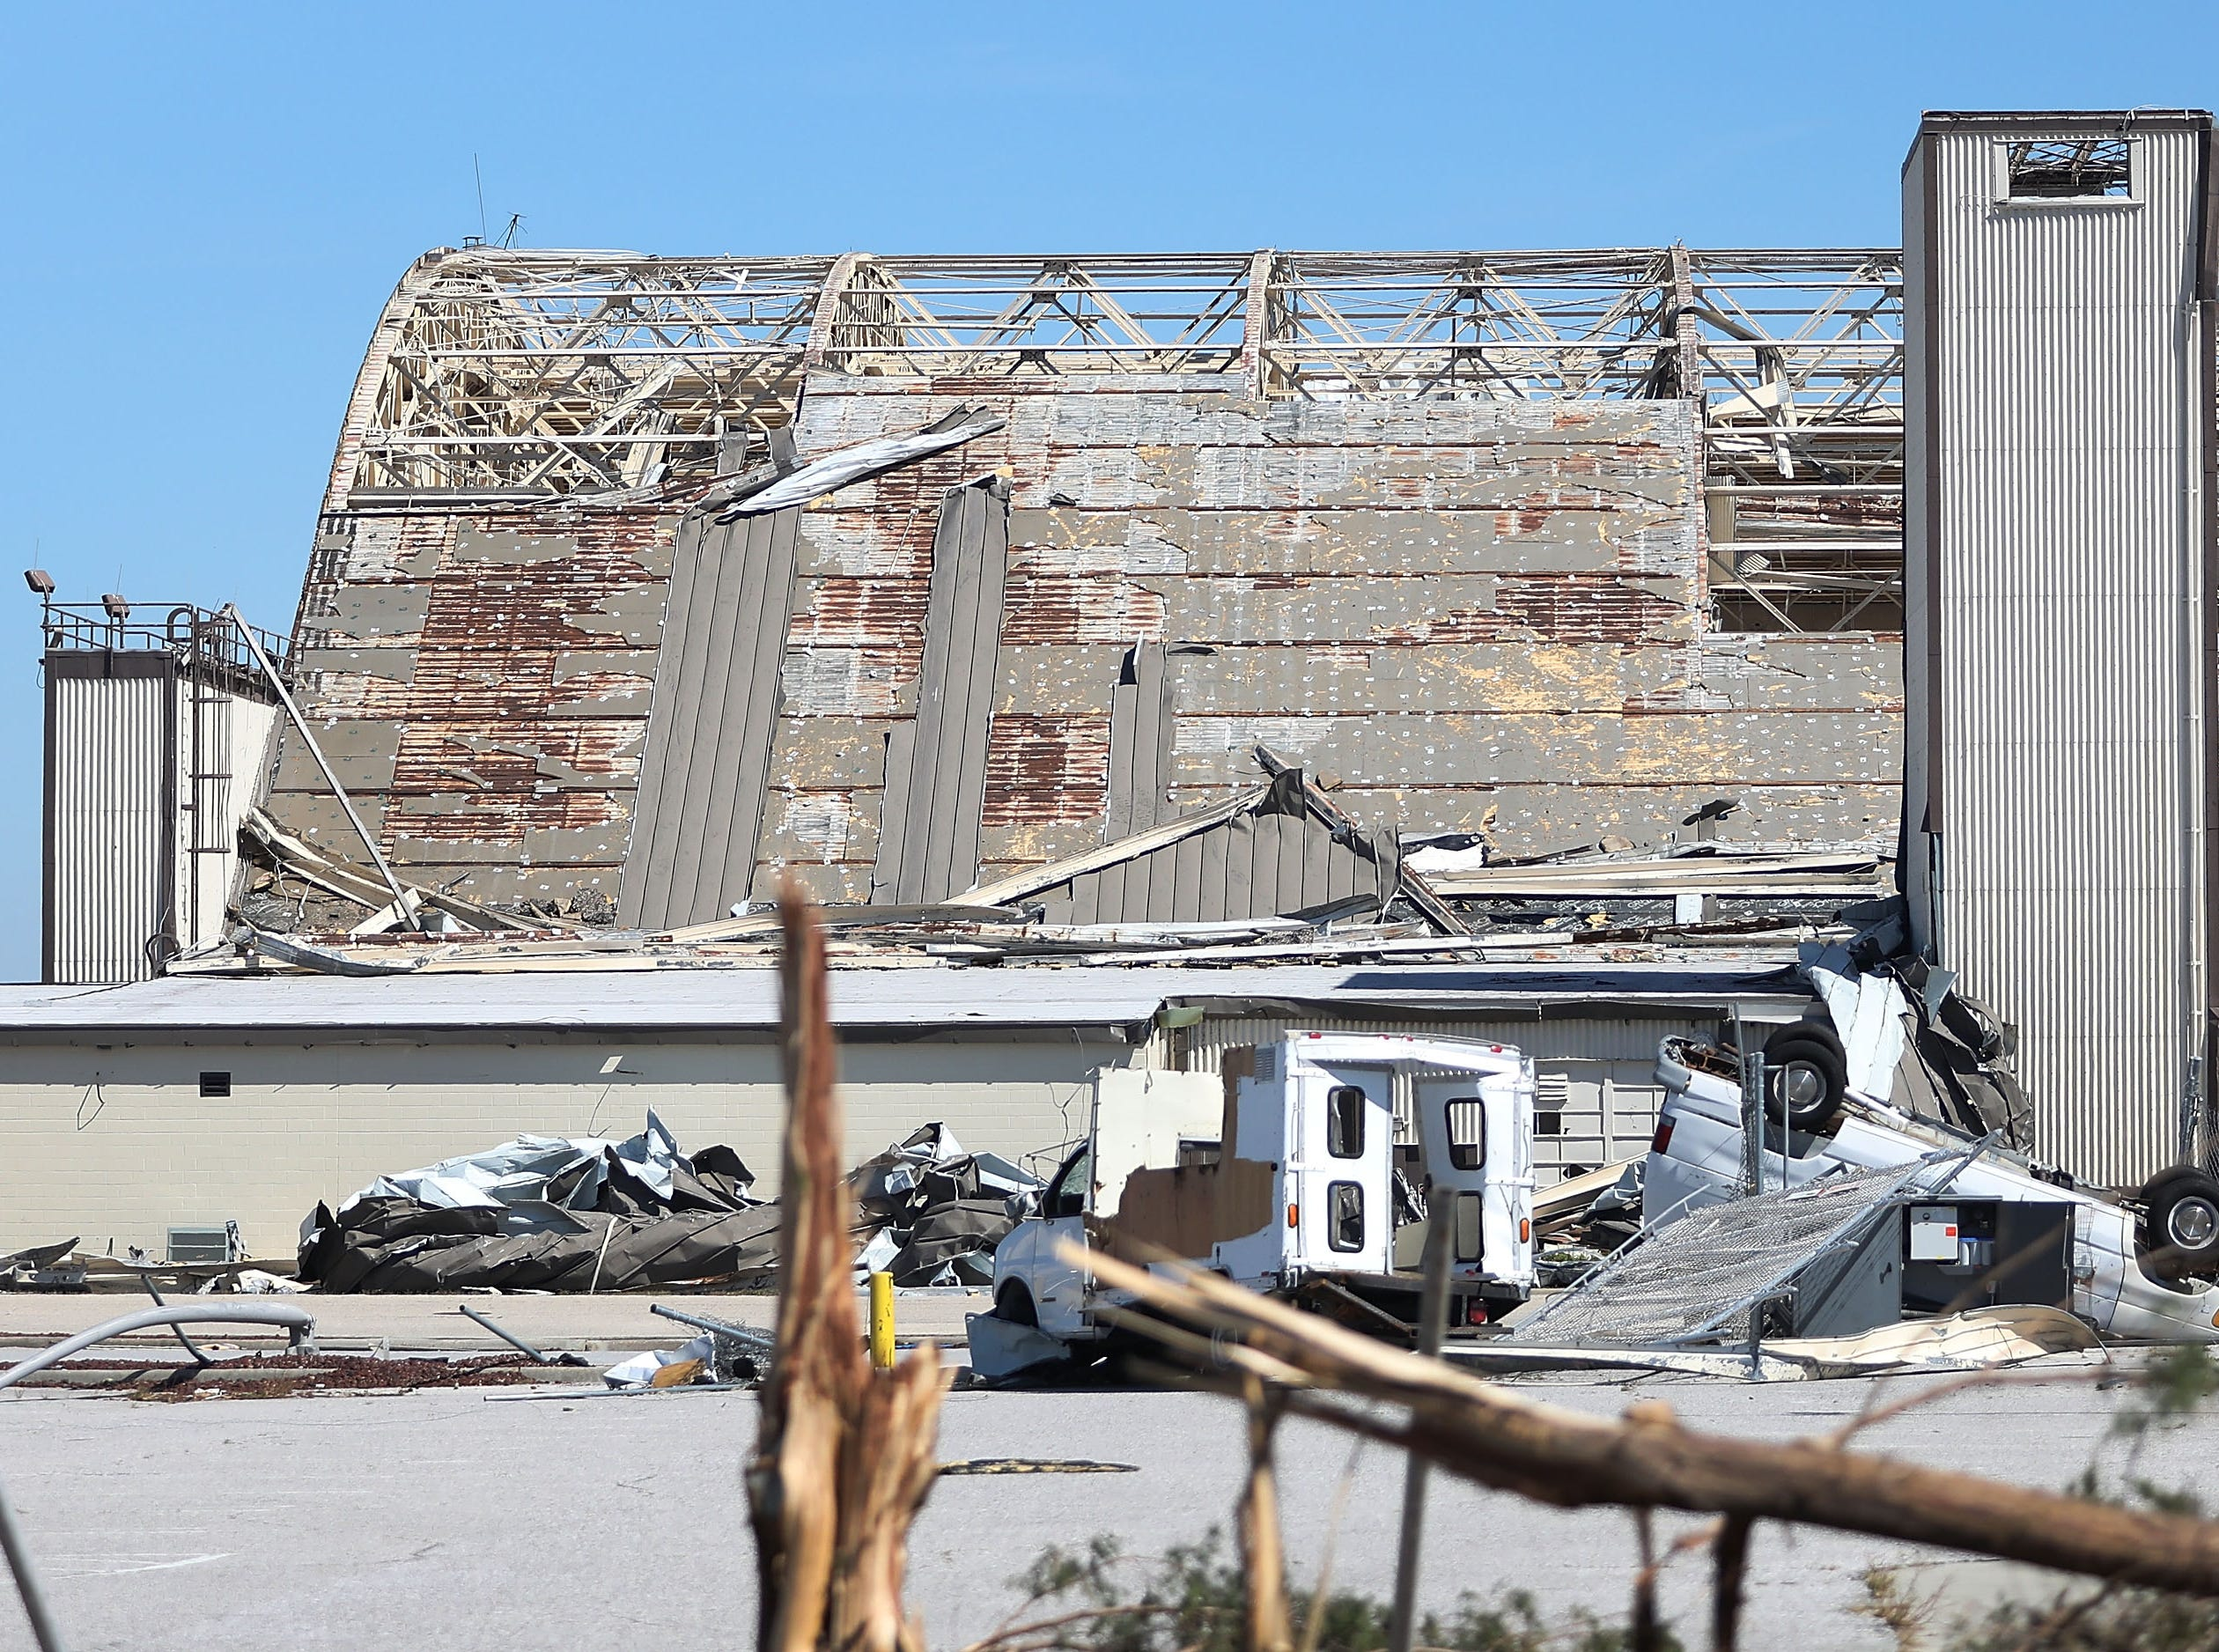 Rick Scott asks for 'immediate action' to rebuild Tyndall Air Force Base after Hurricane Michael